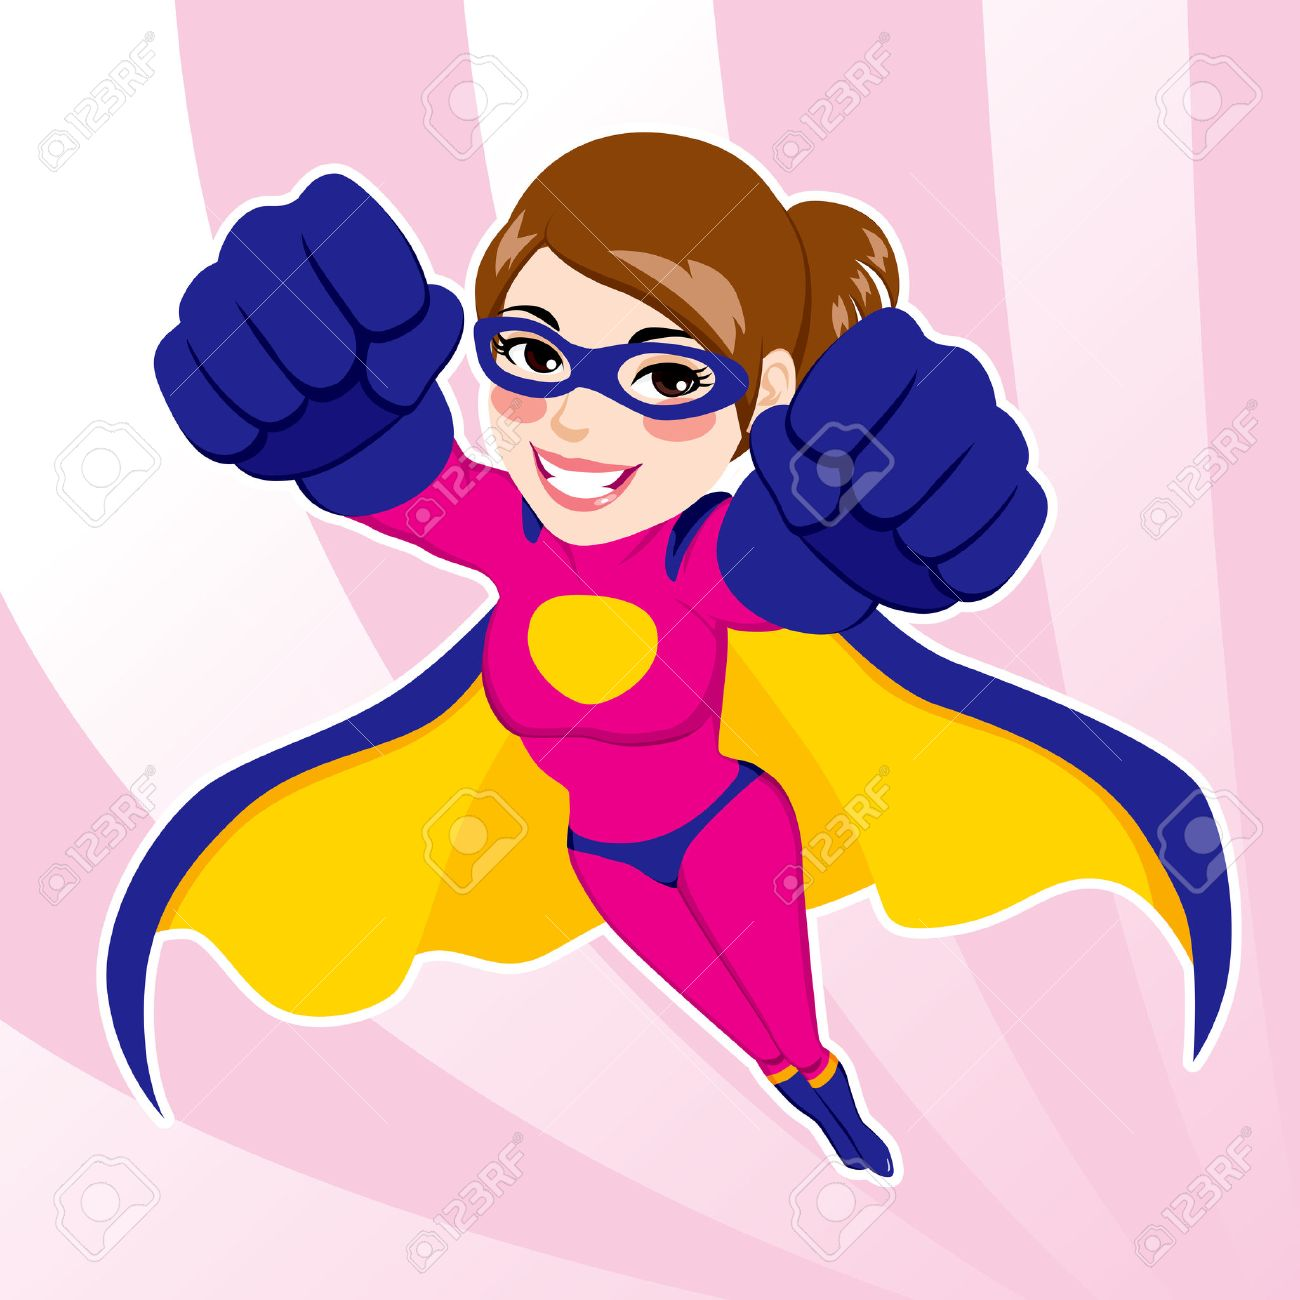 Image result for fit cartoon woman